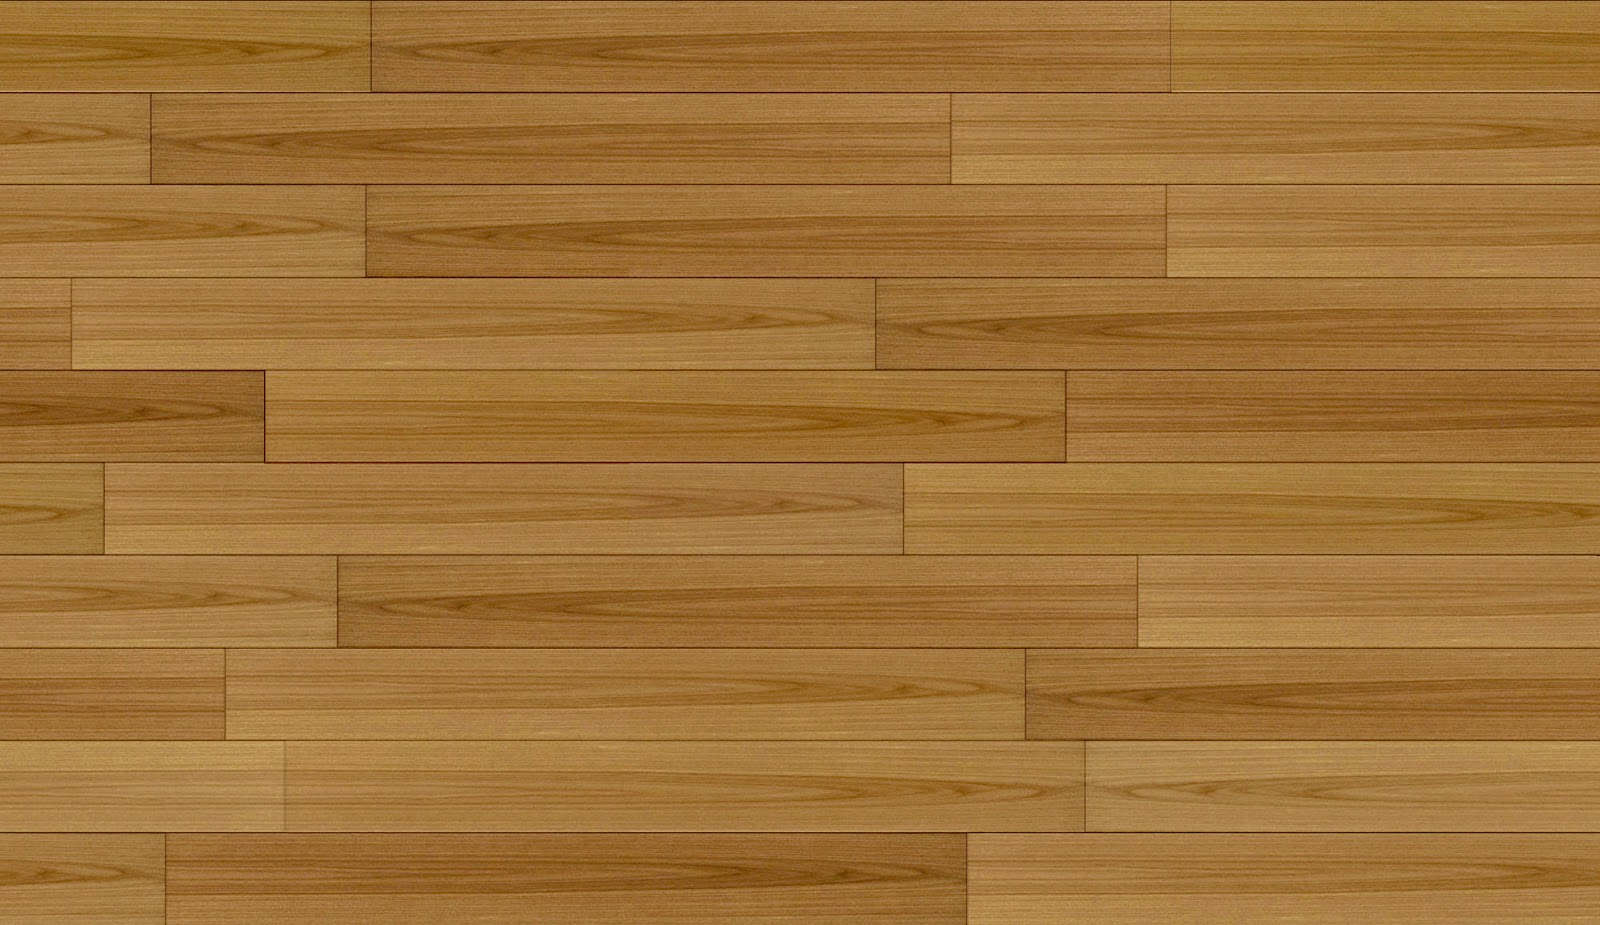 Sketchup texture update news wood floor laminate seamless for Laminated wood